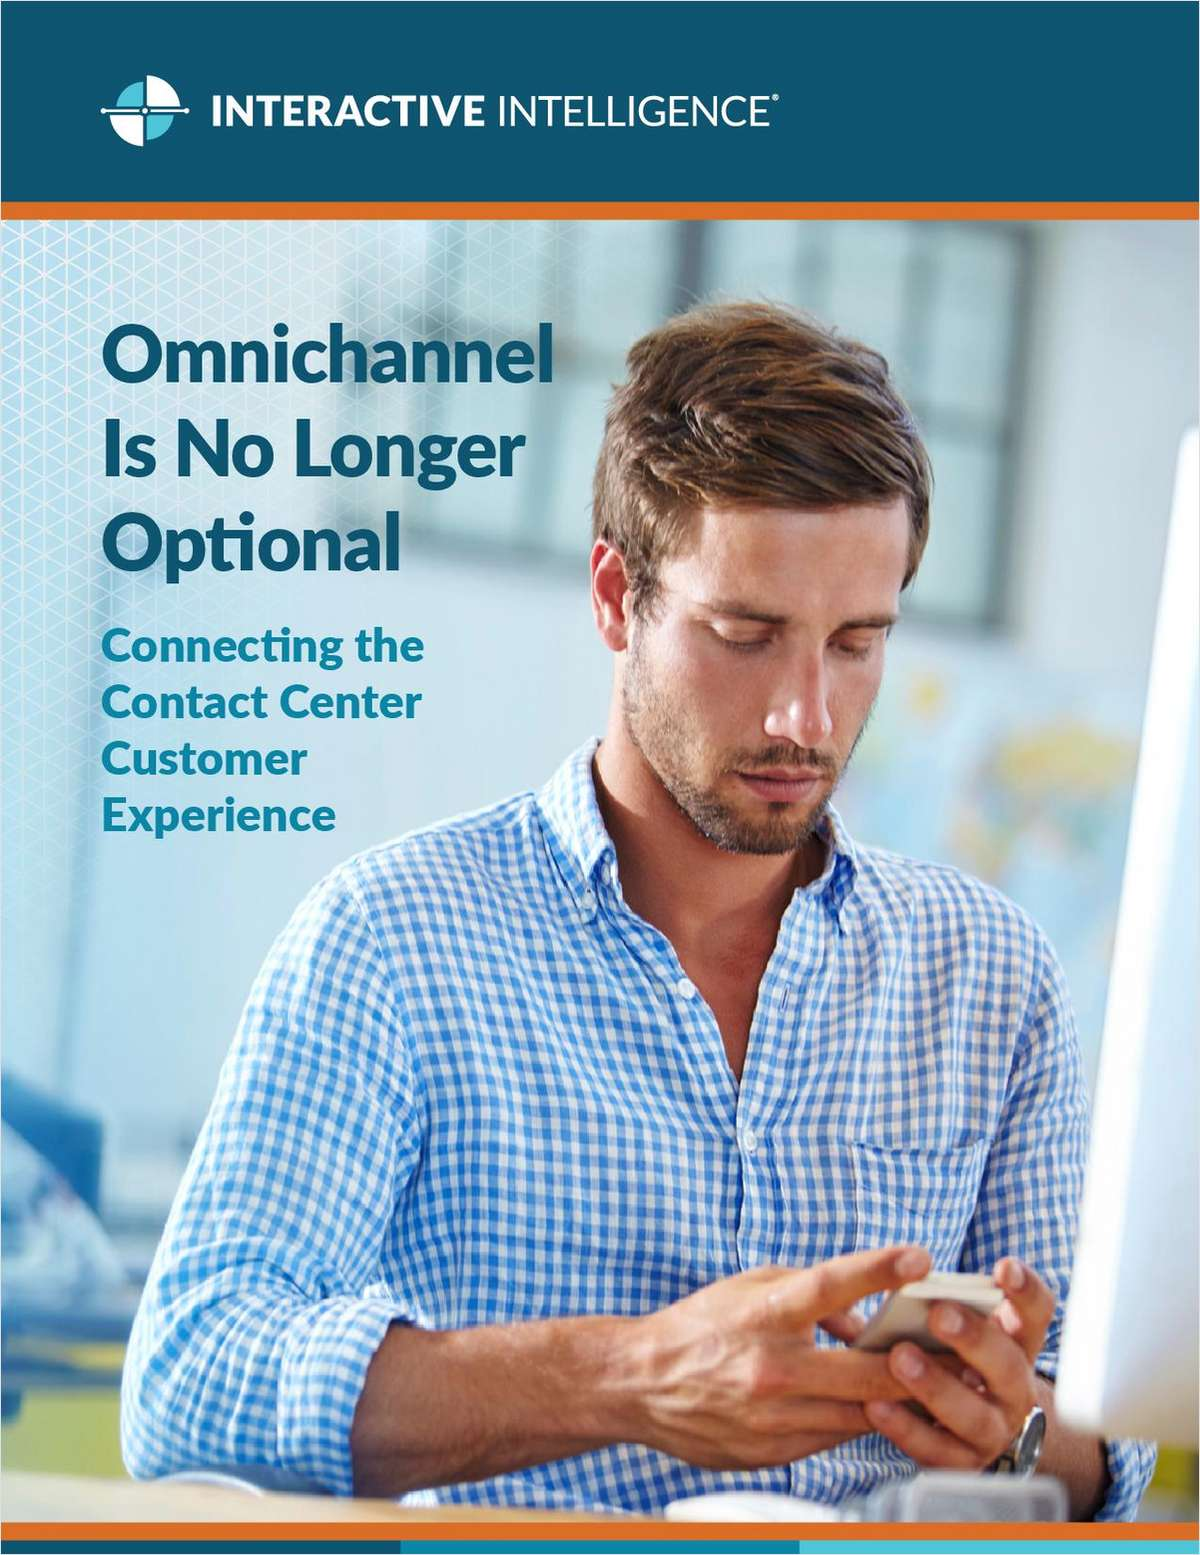 Omnichannel Is No Longer Optional: Connecting the Contact Center Customer Experience